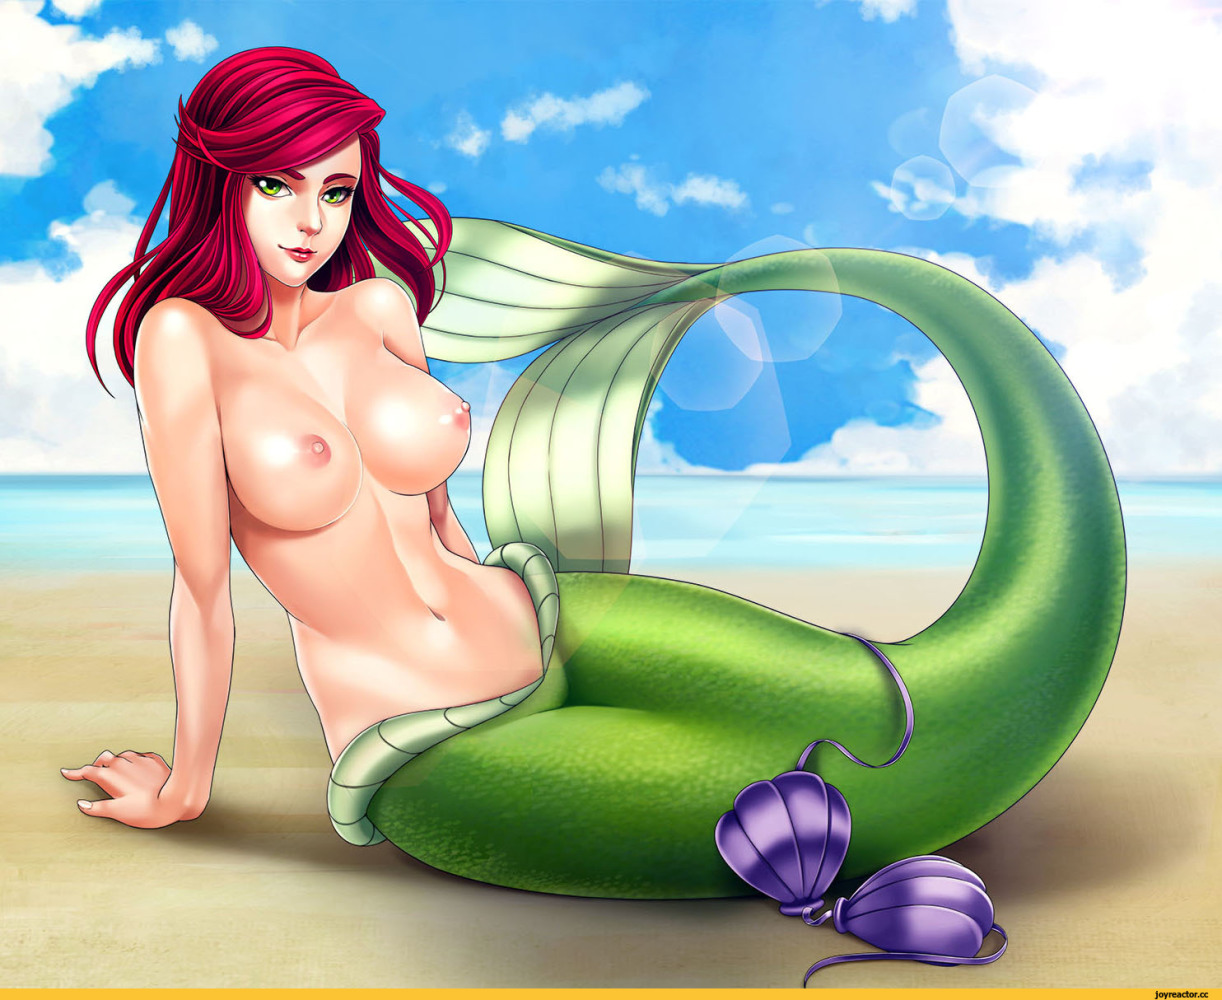 Ursula Little Mermaid Nude